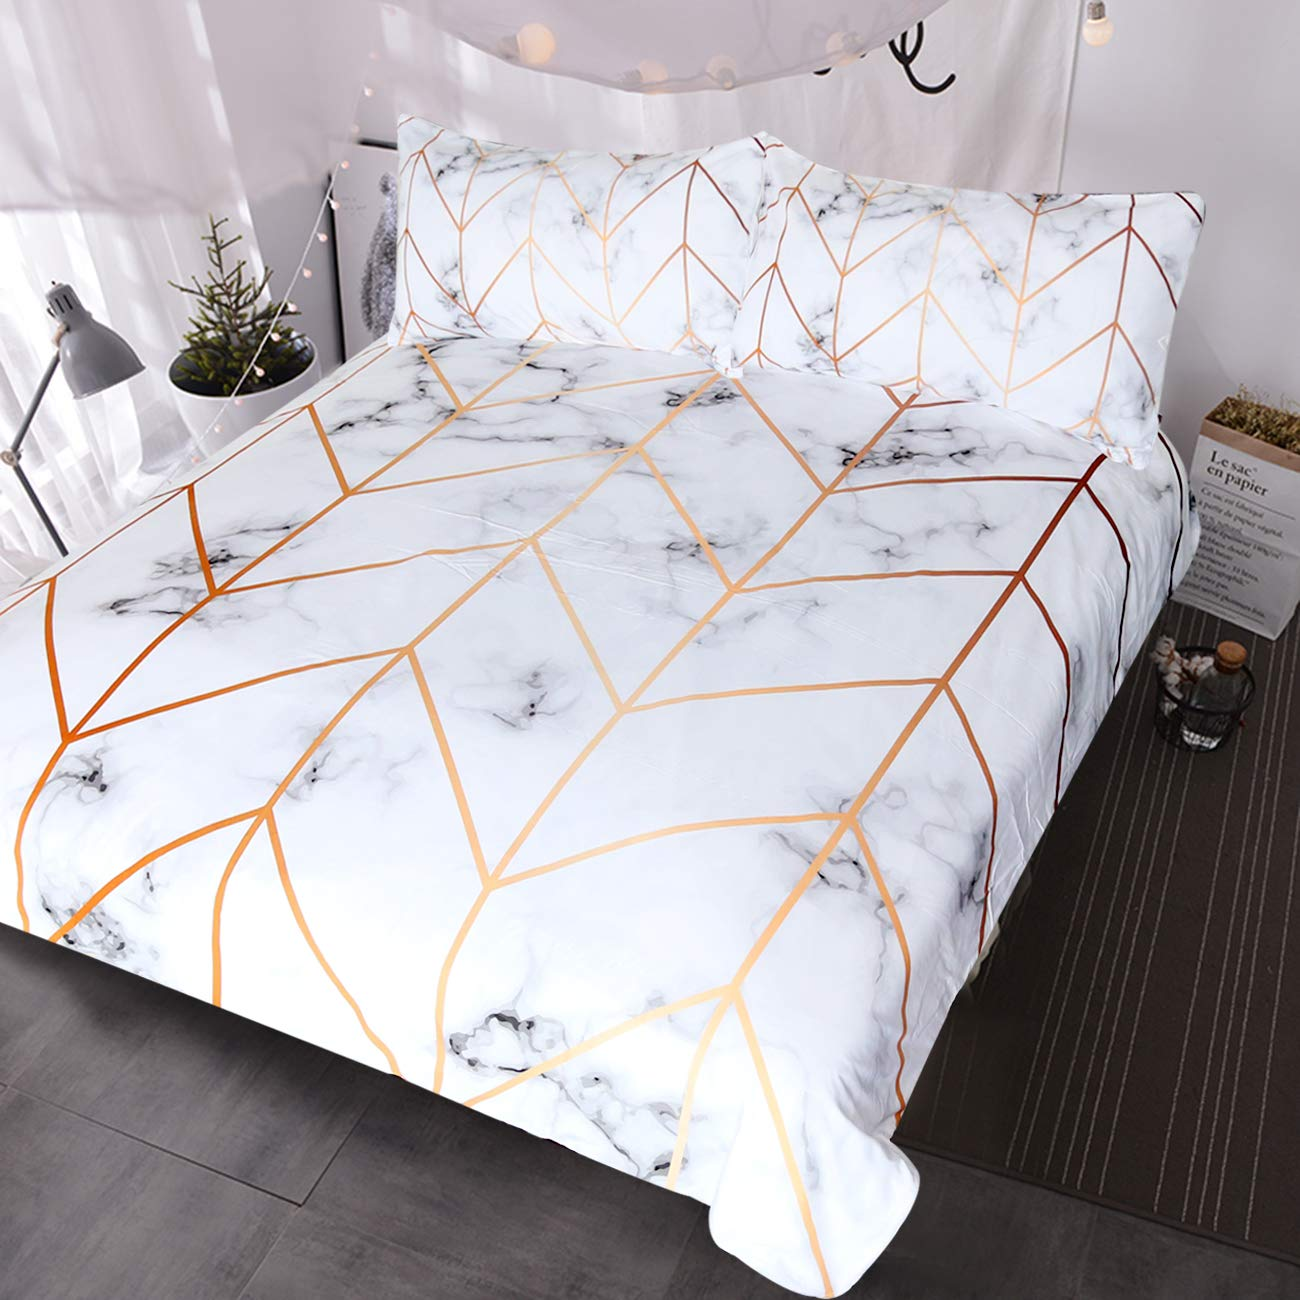 BlessLiving White Marble Bedding Geometric Rose Gold Stripes Lines Pattern Duvet Cover 3 Pieces Ultra Soft Nature Home Decor Marble Bed Set (Queen)